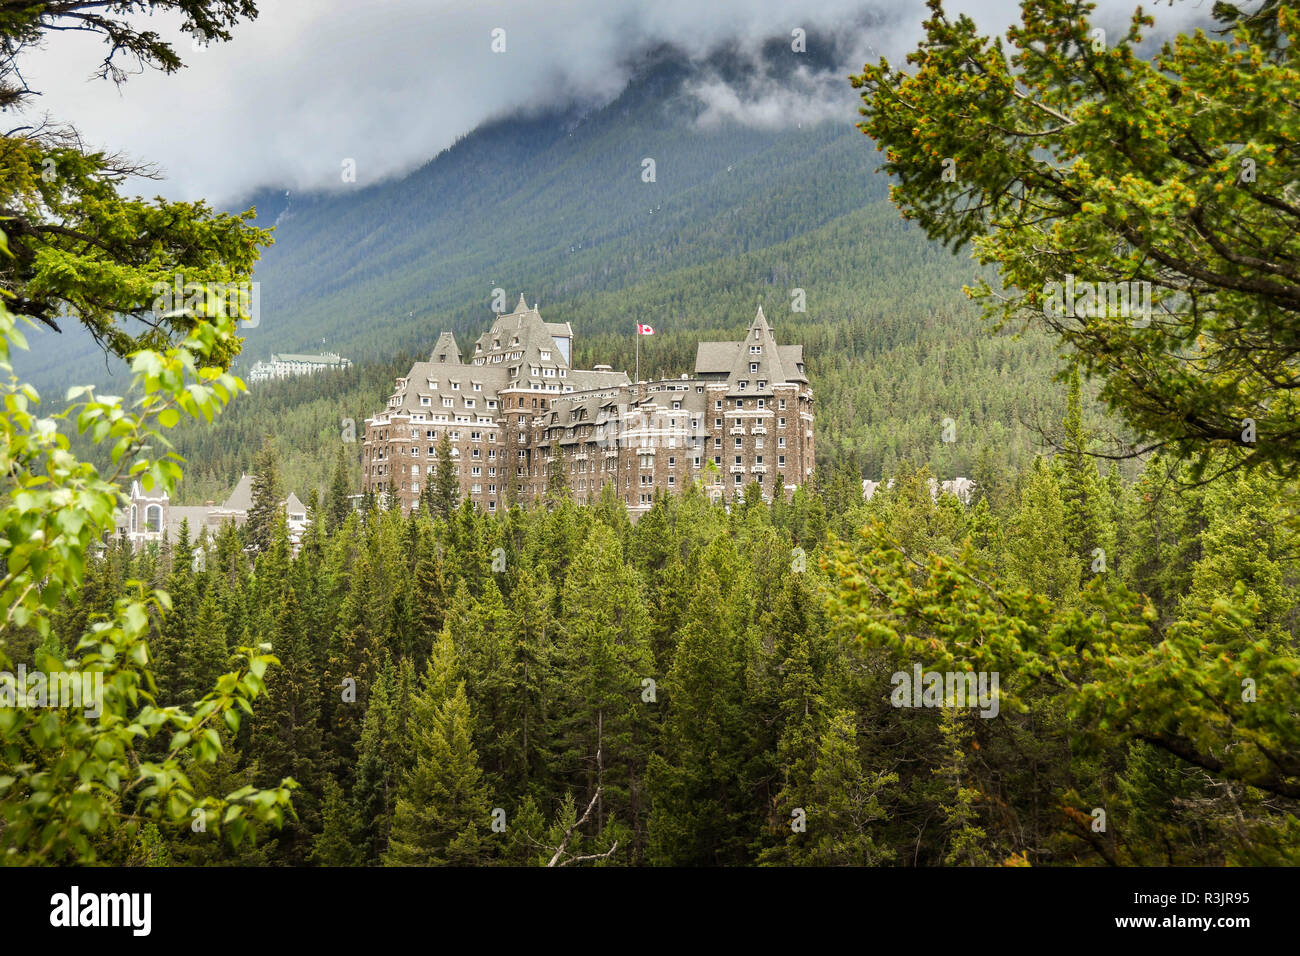 BANFF, AB, CANADA - JUNE 2018: Scenic view of the Banff Springs Fairmont Hotel framed by evergreen trees. - Stock Image